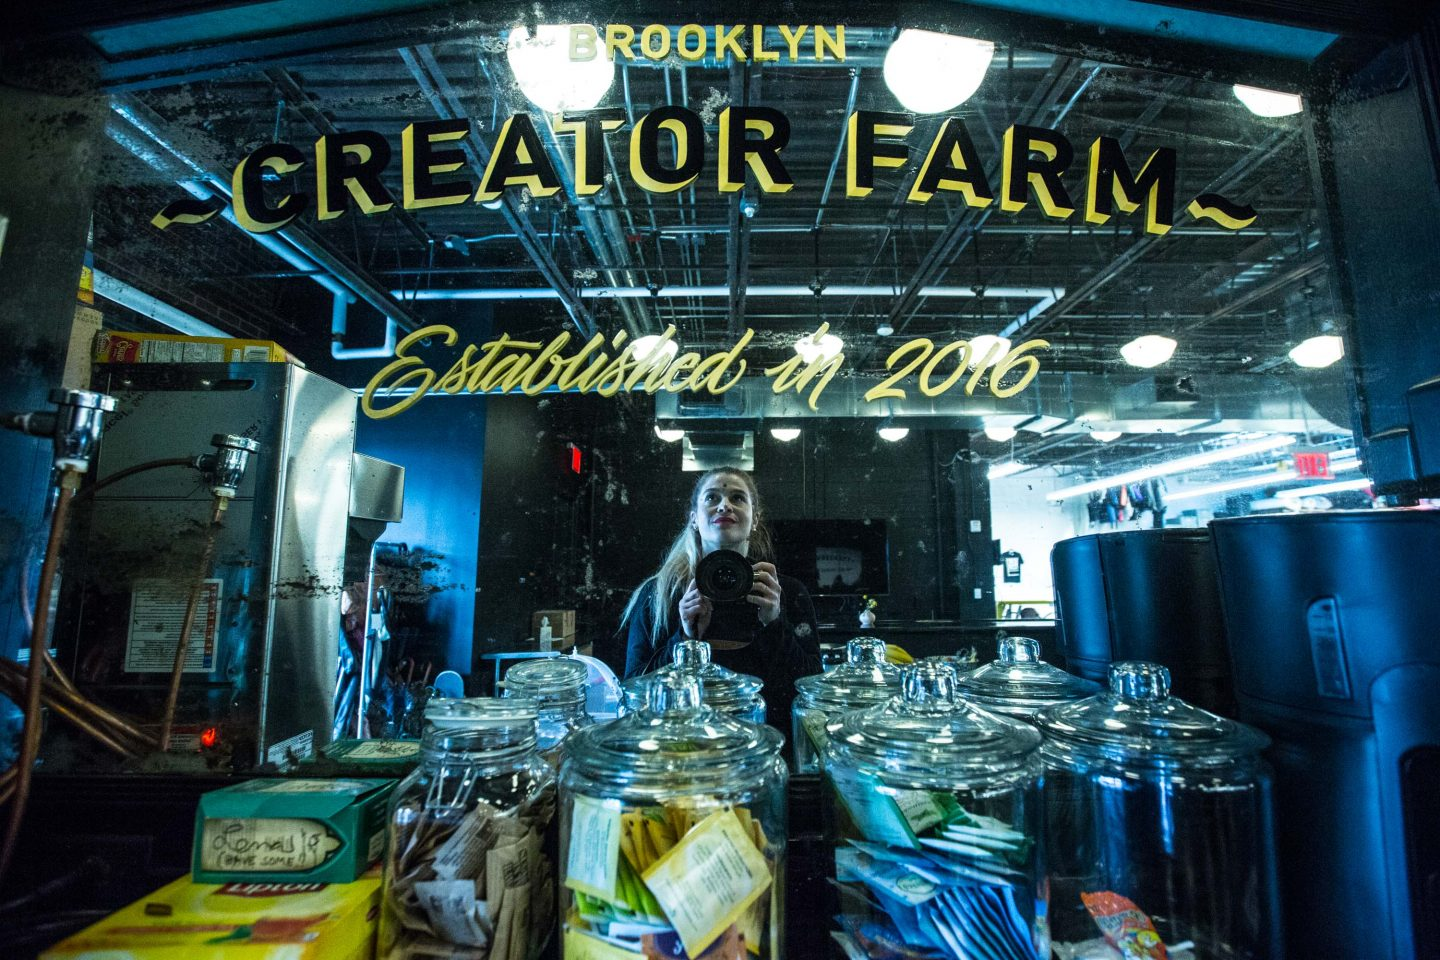 Woman taking a selfie in the mirror at the bar of the adidas Brooklyn Creator Farm in Brooklyn, New York, mirror selfie, bar, creative spaces, creativity, creative work spaces, Brooklyn, New York City, adidas, GamePlan A